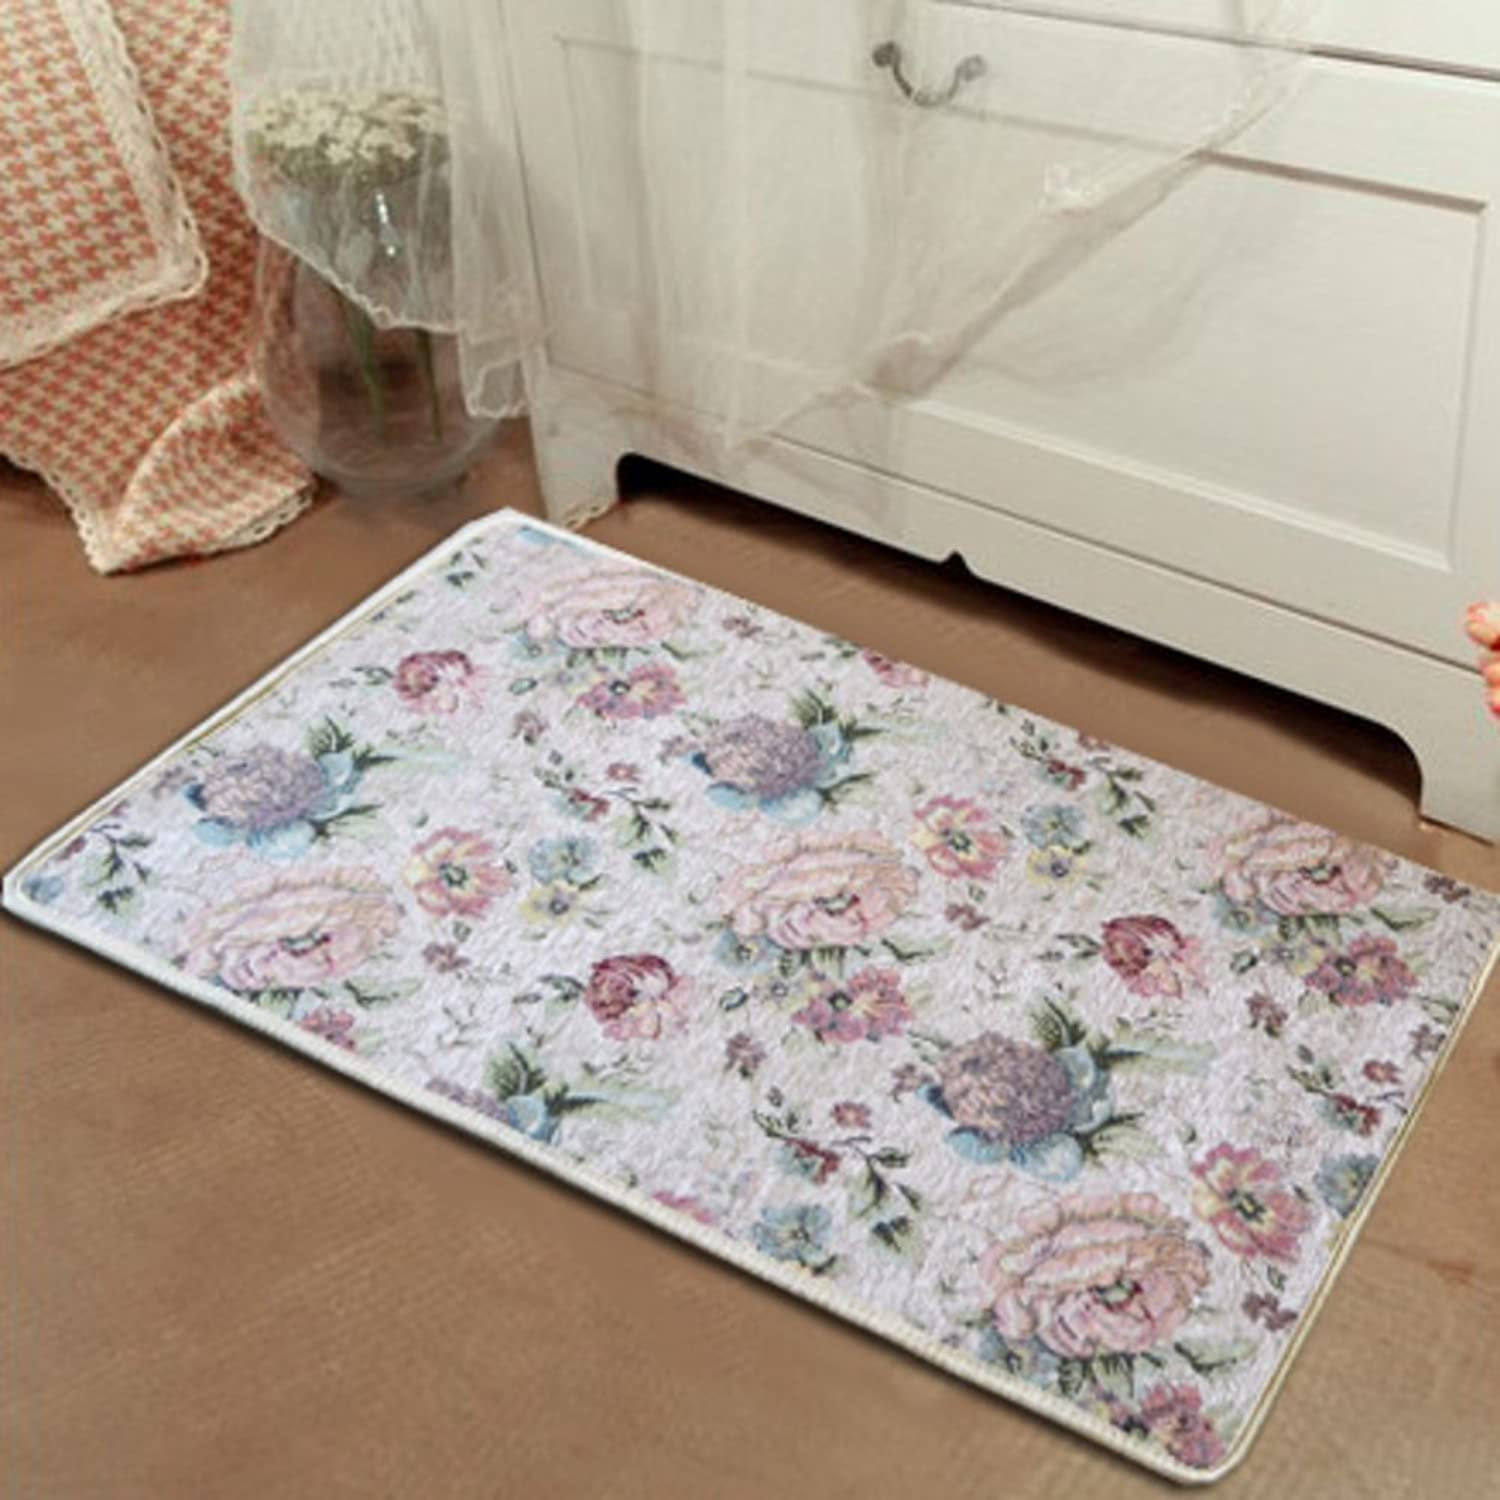 Entrance mats doormat bathroom Kitchen floor mats Living room mat Bedroom door mat at the door-C 80x120cm(31x47inch)